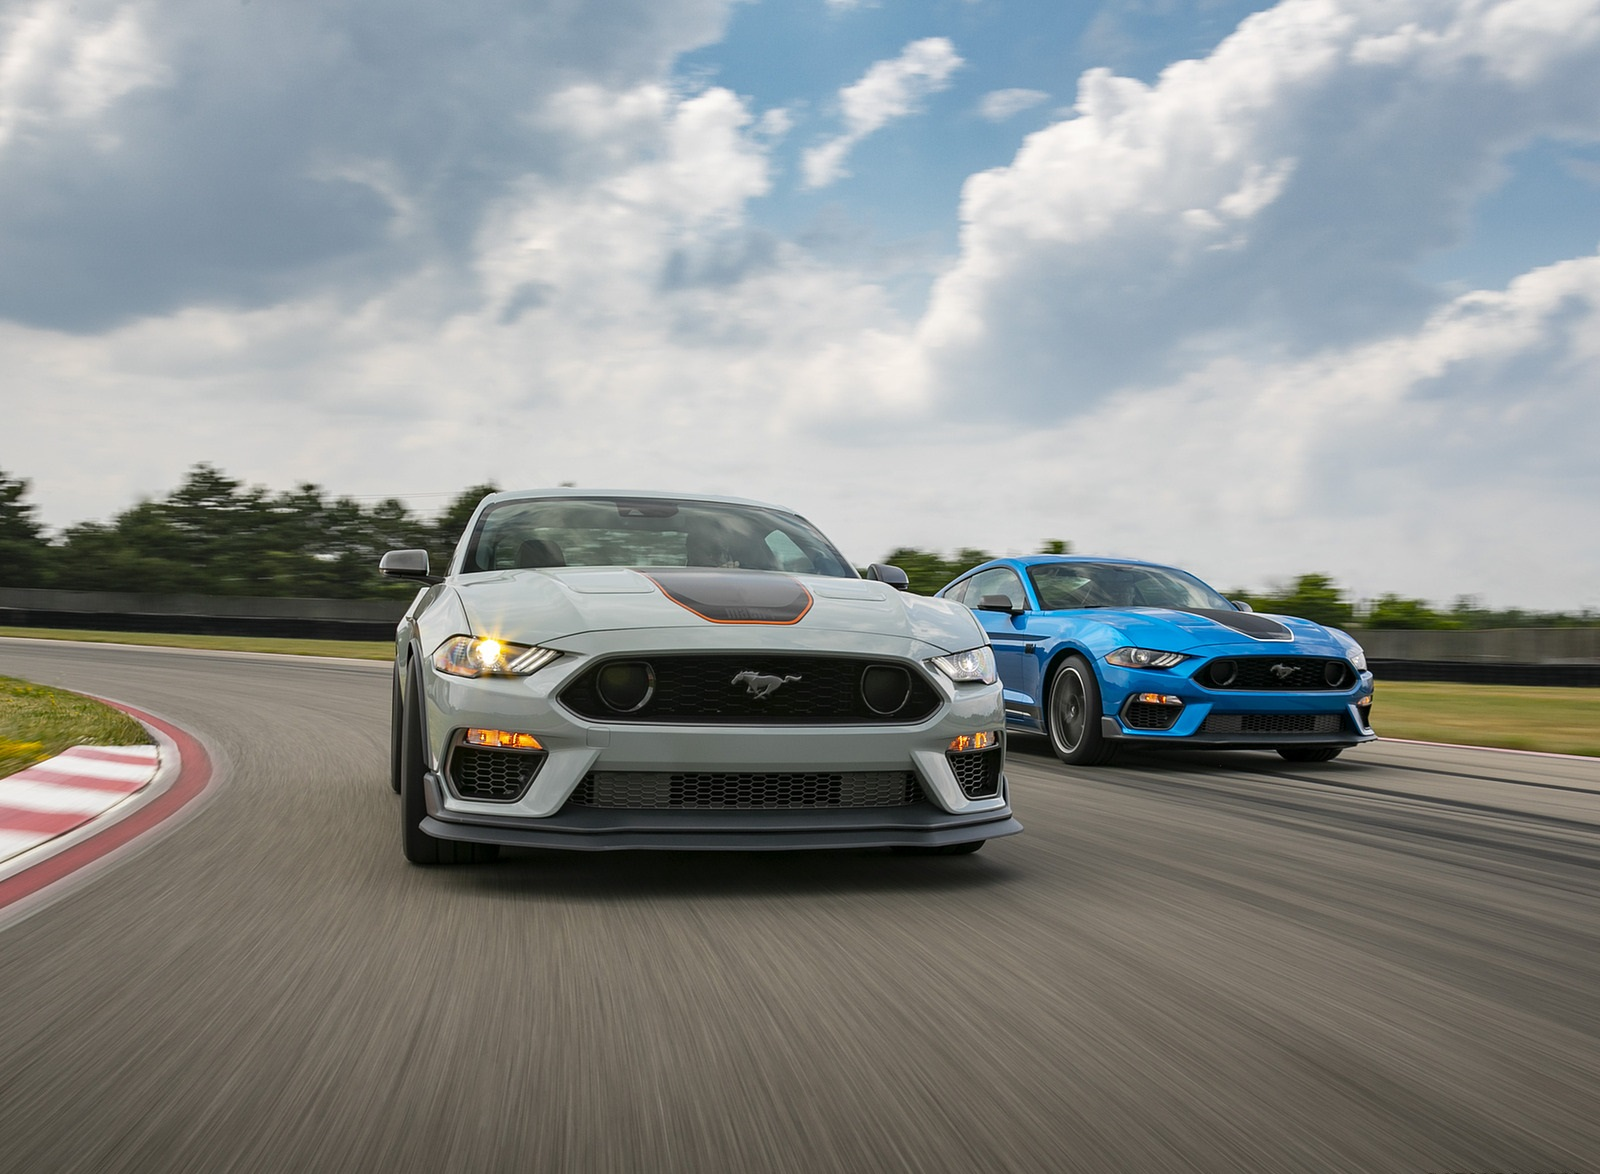 2021 Ford Mustang Mach 1 and 1969 Mach 1 Wallpapers (4)